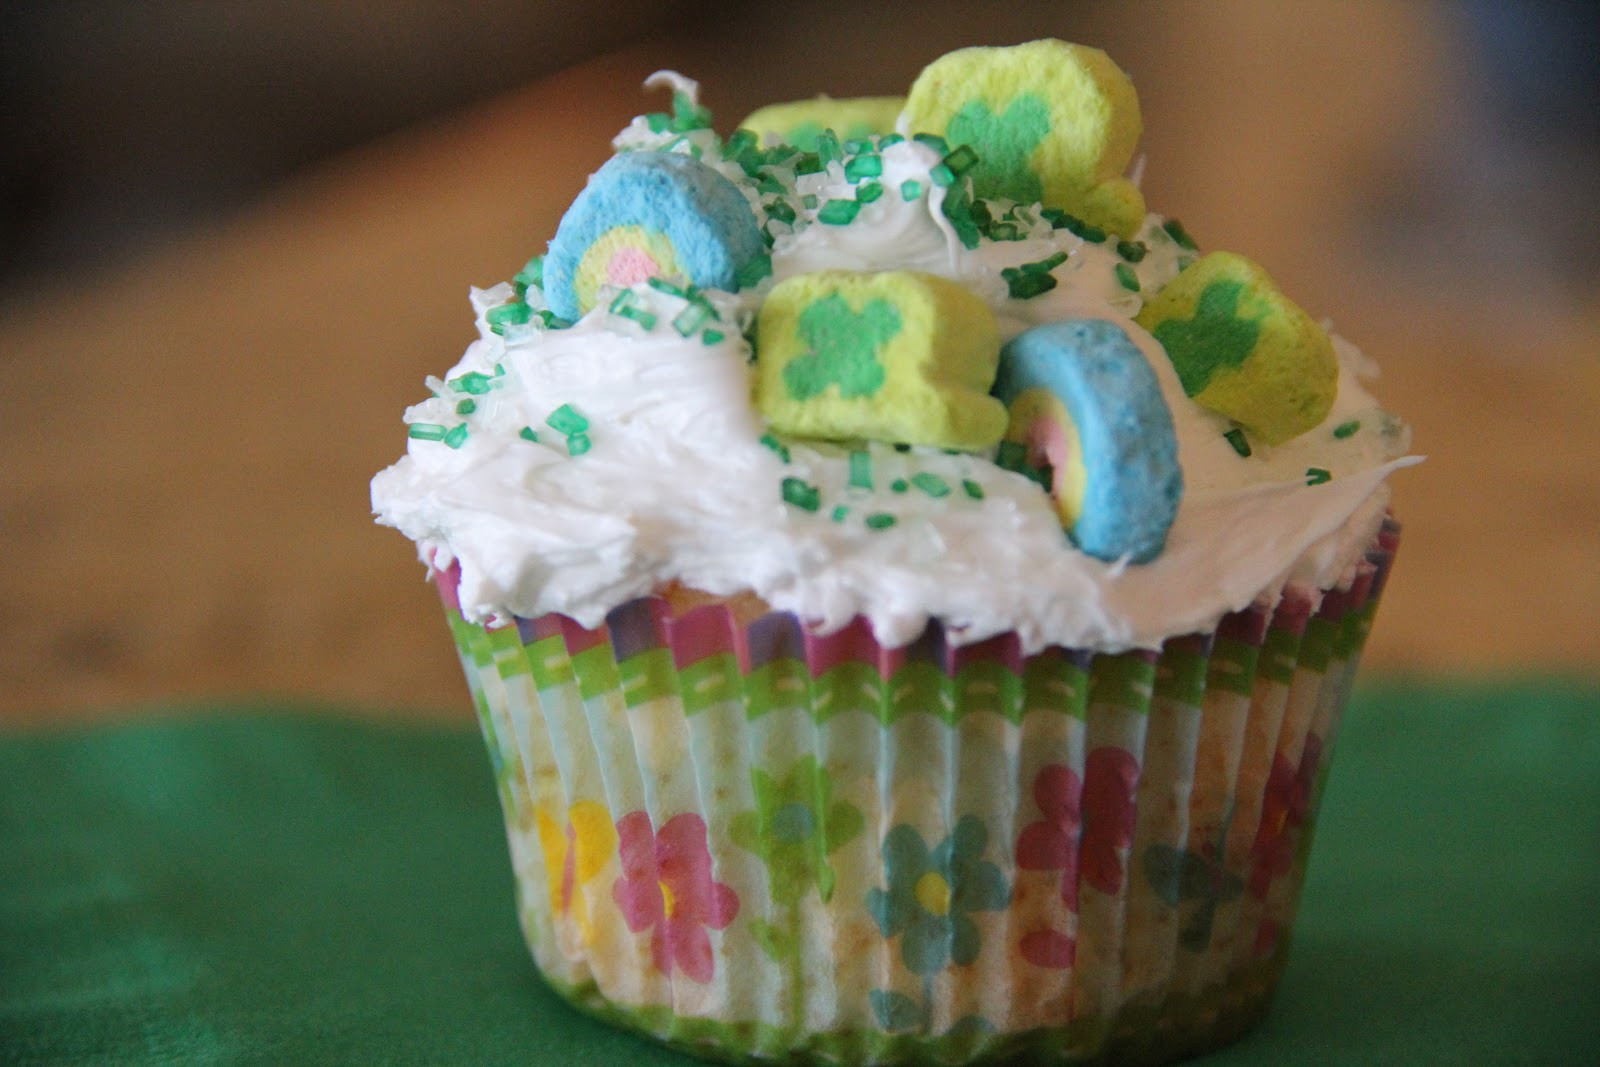 ... cupcake cookbooks had a recipe for topping cupcakes with lucky charms